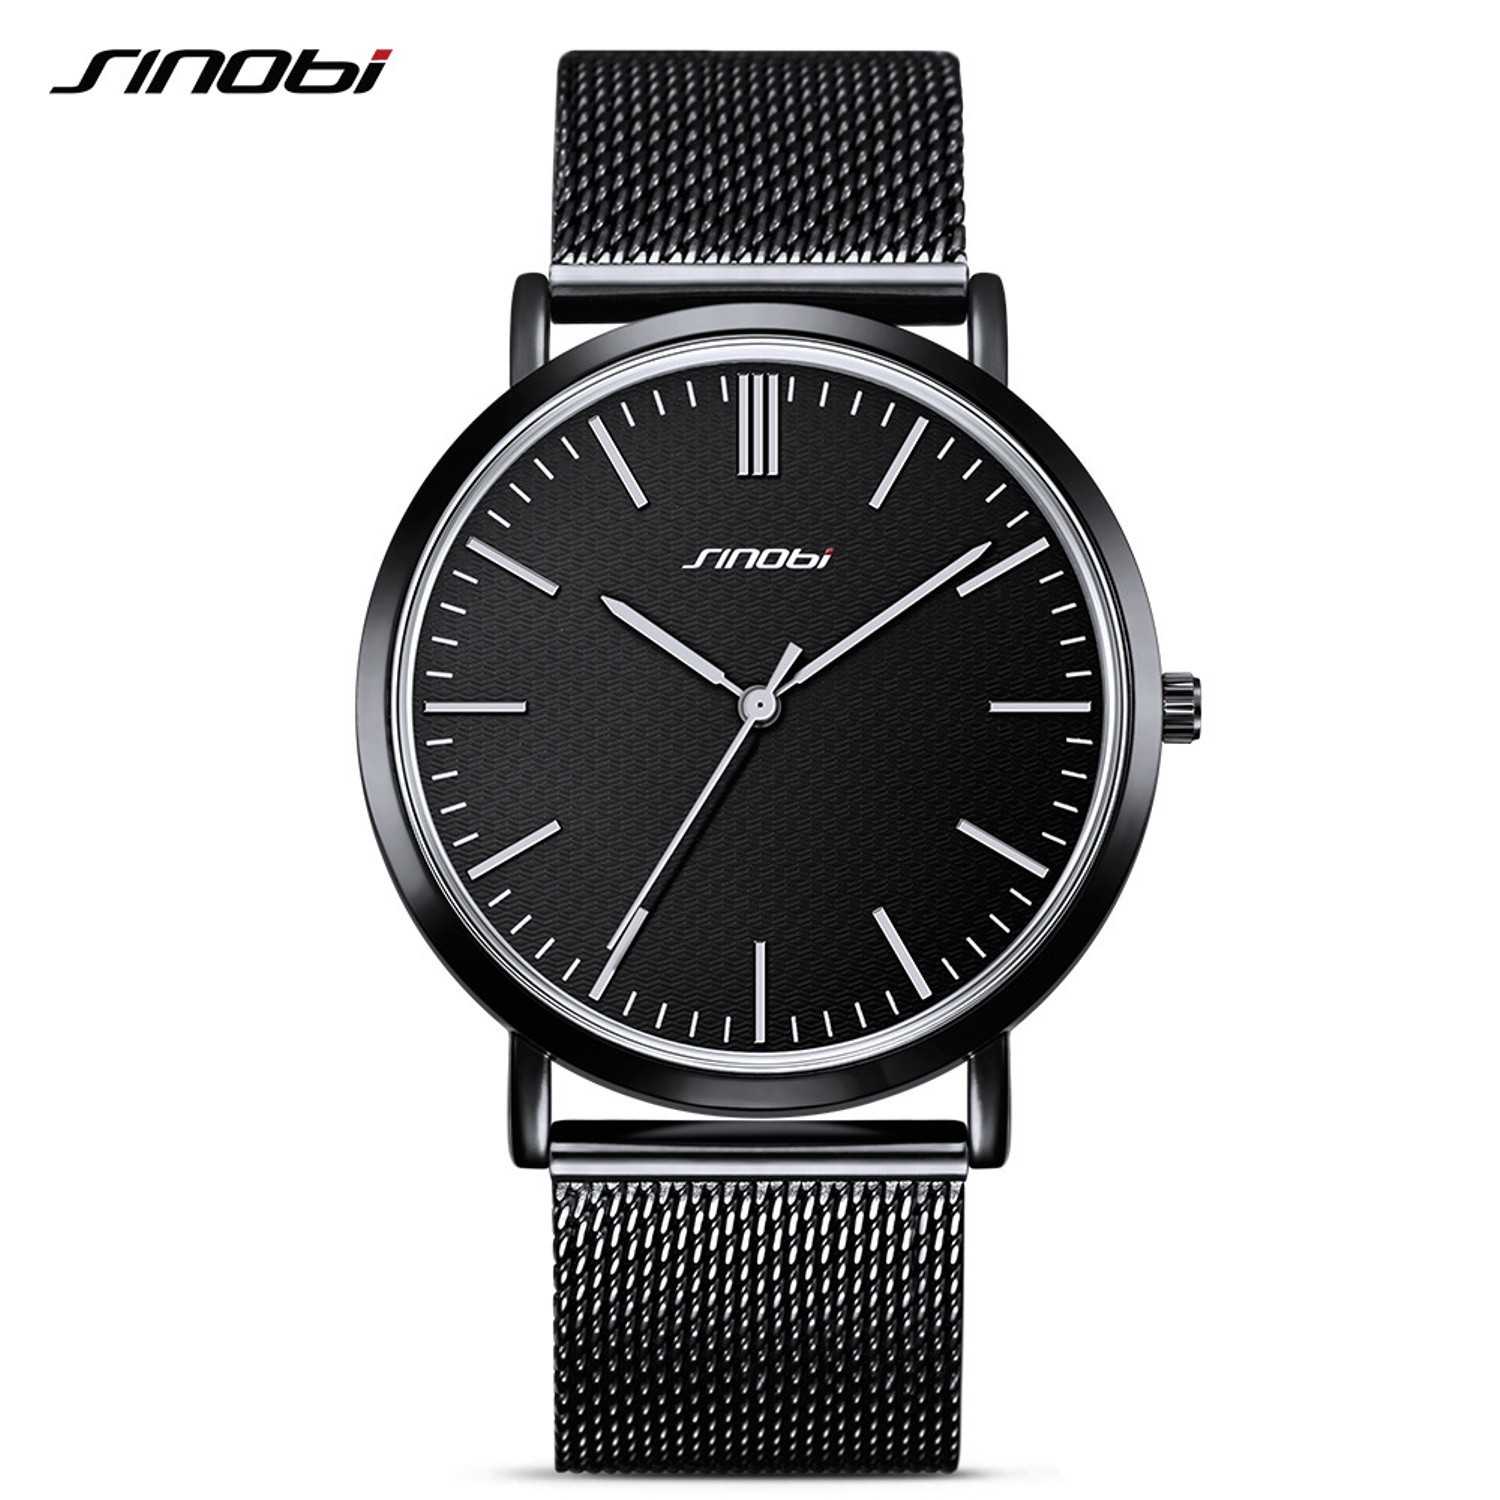 SINOBI-Top-Brand-Watches-Men-Quartz-Sport-Watch-Watchcase-Ultra-Thin-Business-Watch-Stainless-Steel-Mesh_1500x1500_STRETCH_black.jpg